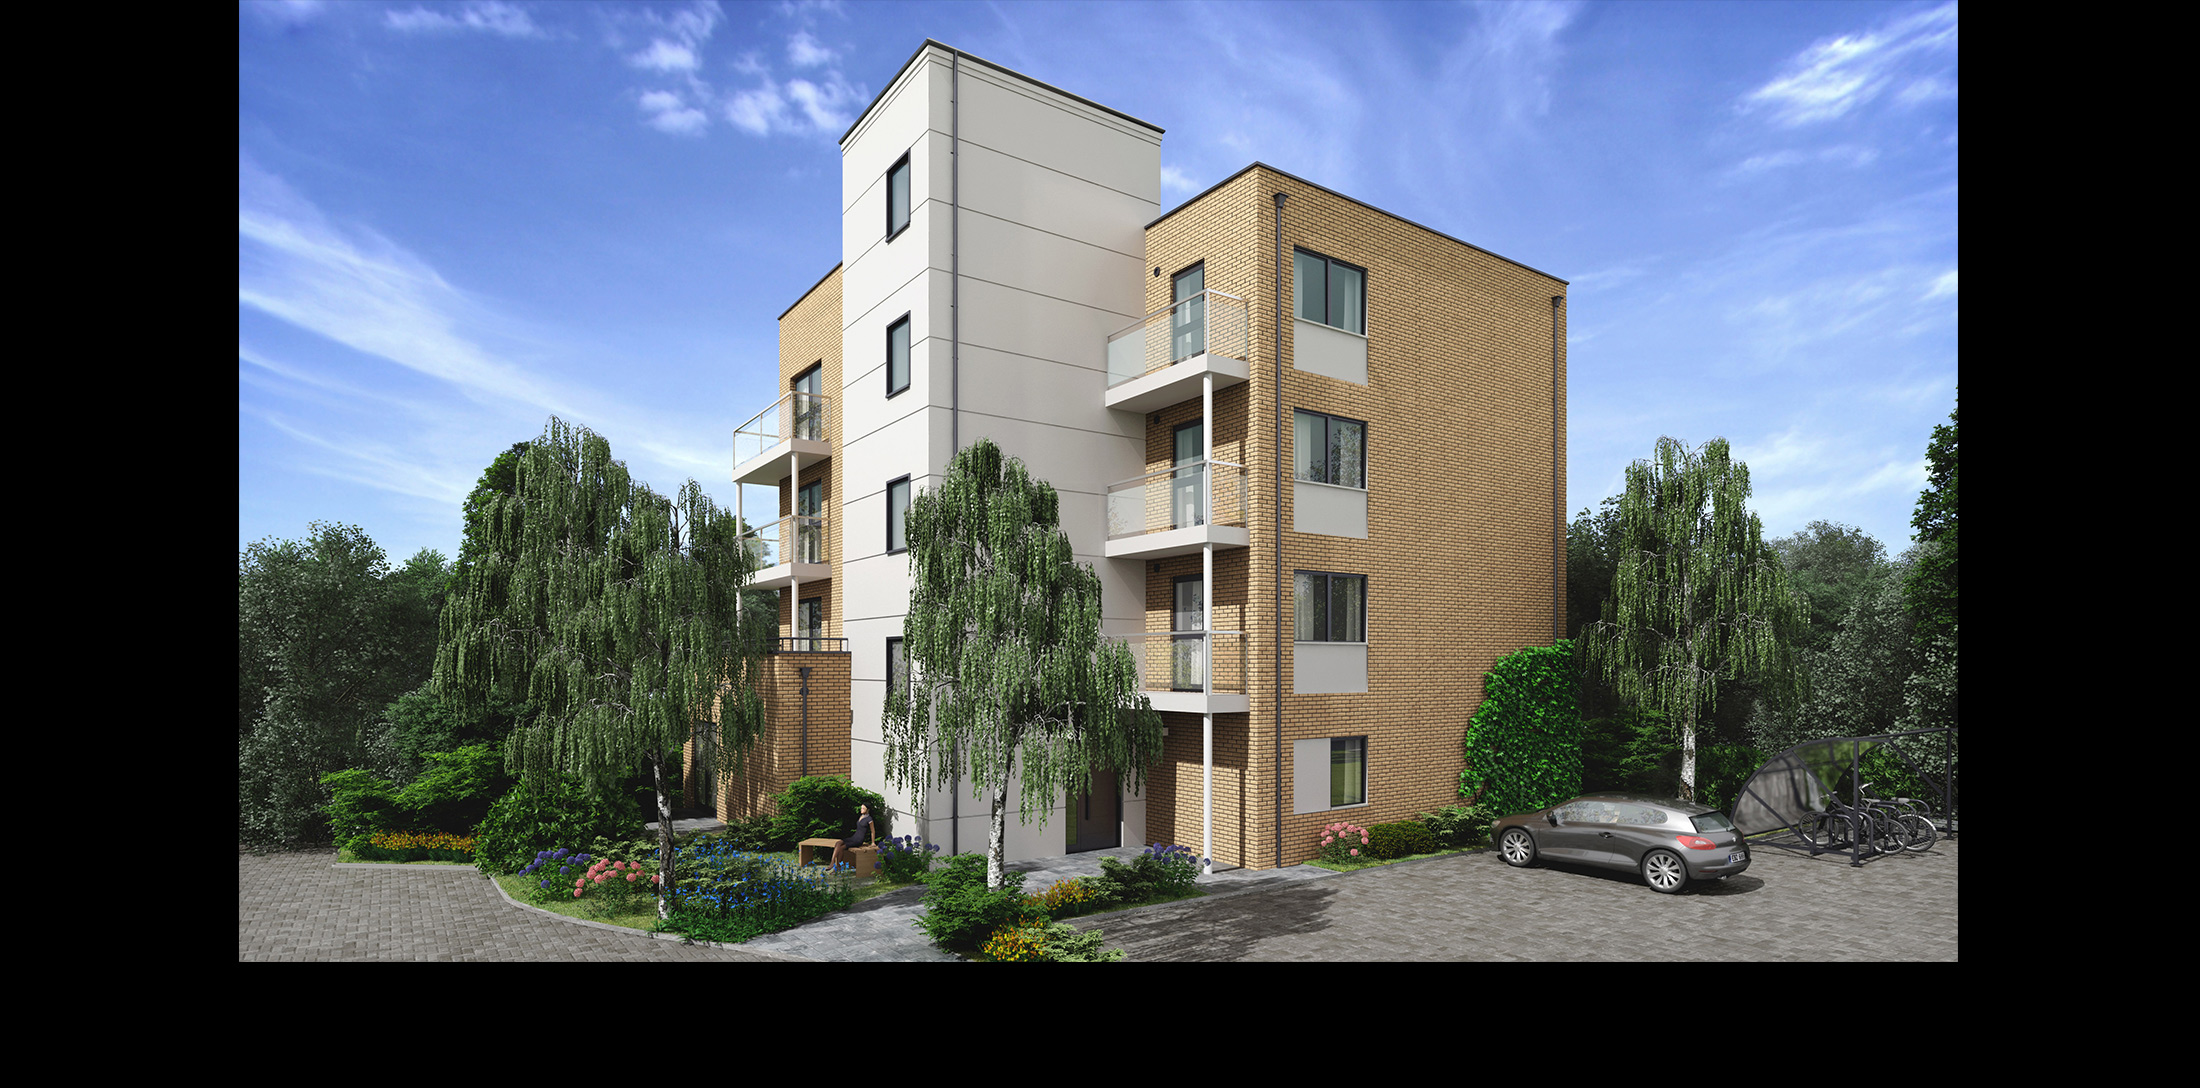 concept-developments-new-homes-whyteleafe-arlington-lodge-cgi-